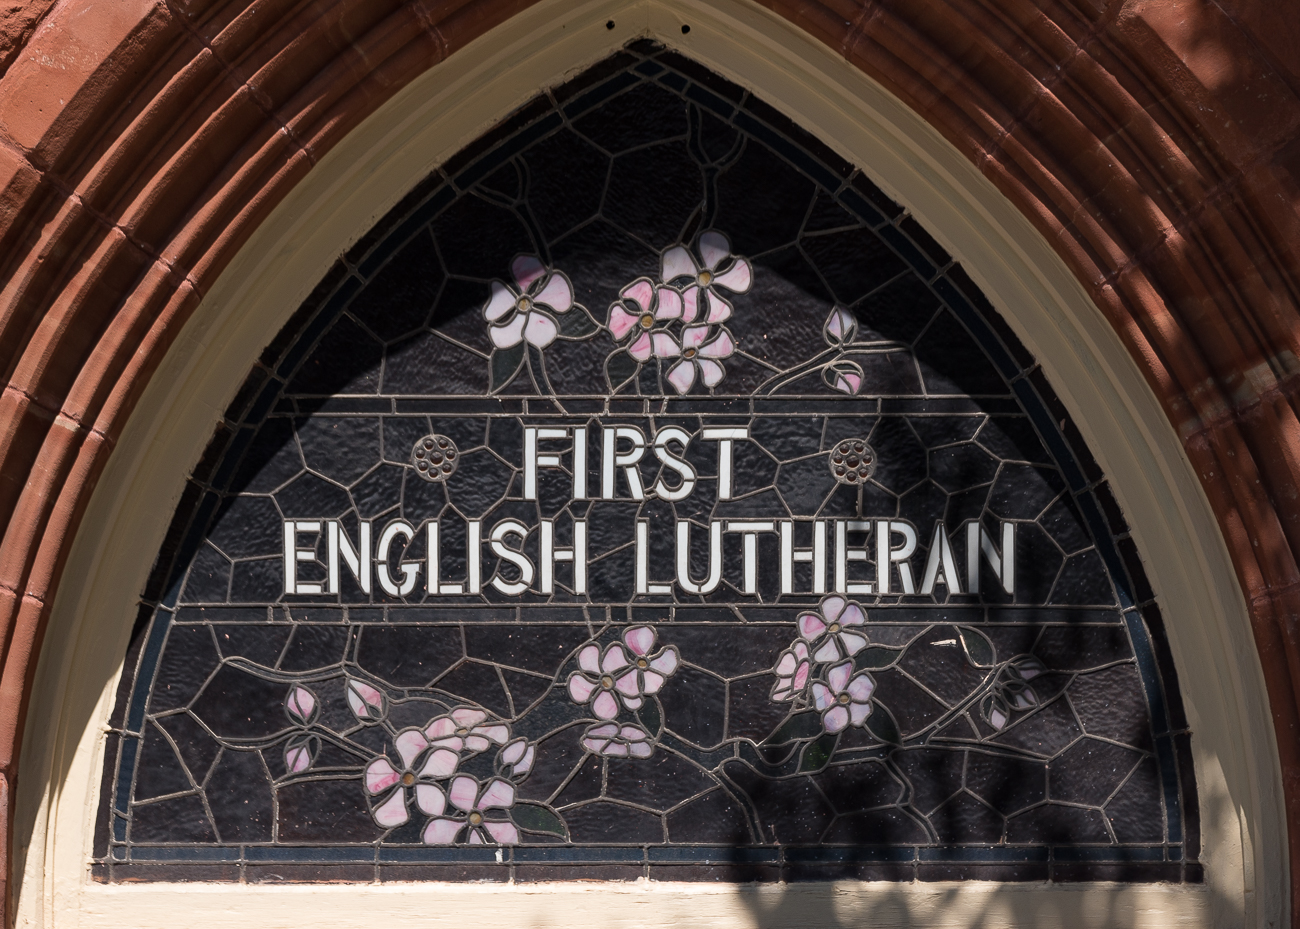 First Lutheran Church on Race Street in Over-the-Rhine recently completed a 20-month renovation of the building's facade. Built in 1895, the church has been serving the community for over 120 years and has assumed a 21st century role as host to the arts. In addition to weekly service and ministry work, it now provides an adequate venue for theater group rehearsals, professional group meetings, weddings, support groups, choral rehearsals, and much more. Future phases of renovations will further enhance the church and make it more accessible to those with disabilities, as well as improve the space for various events. ADDRESS: 1208 Race Street (45202) / Image: Phil Armstrong, Cincinnati Refined // Published: 6.15.18